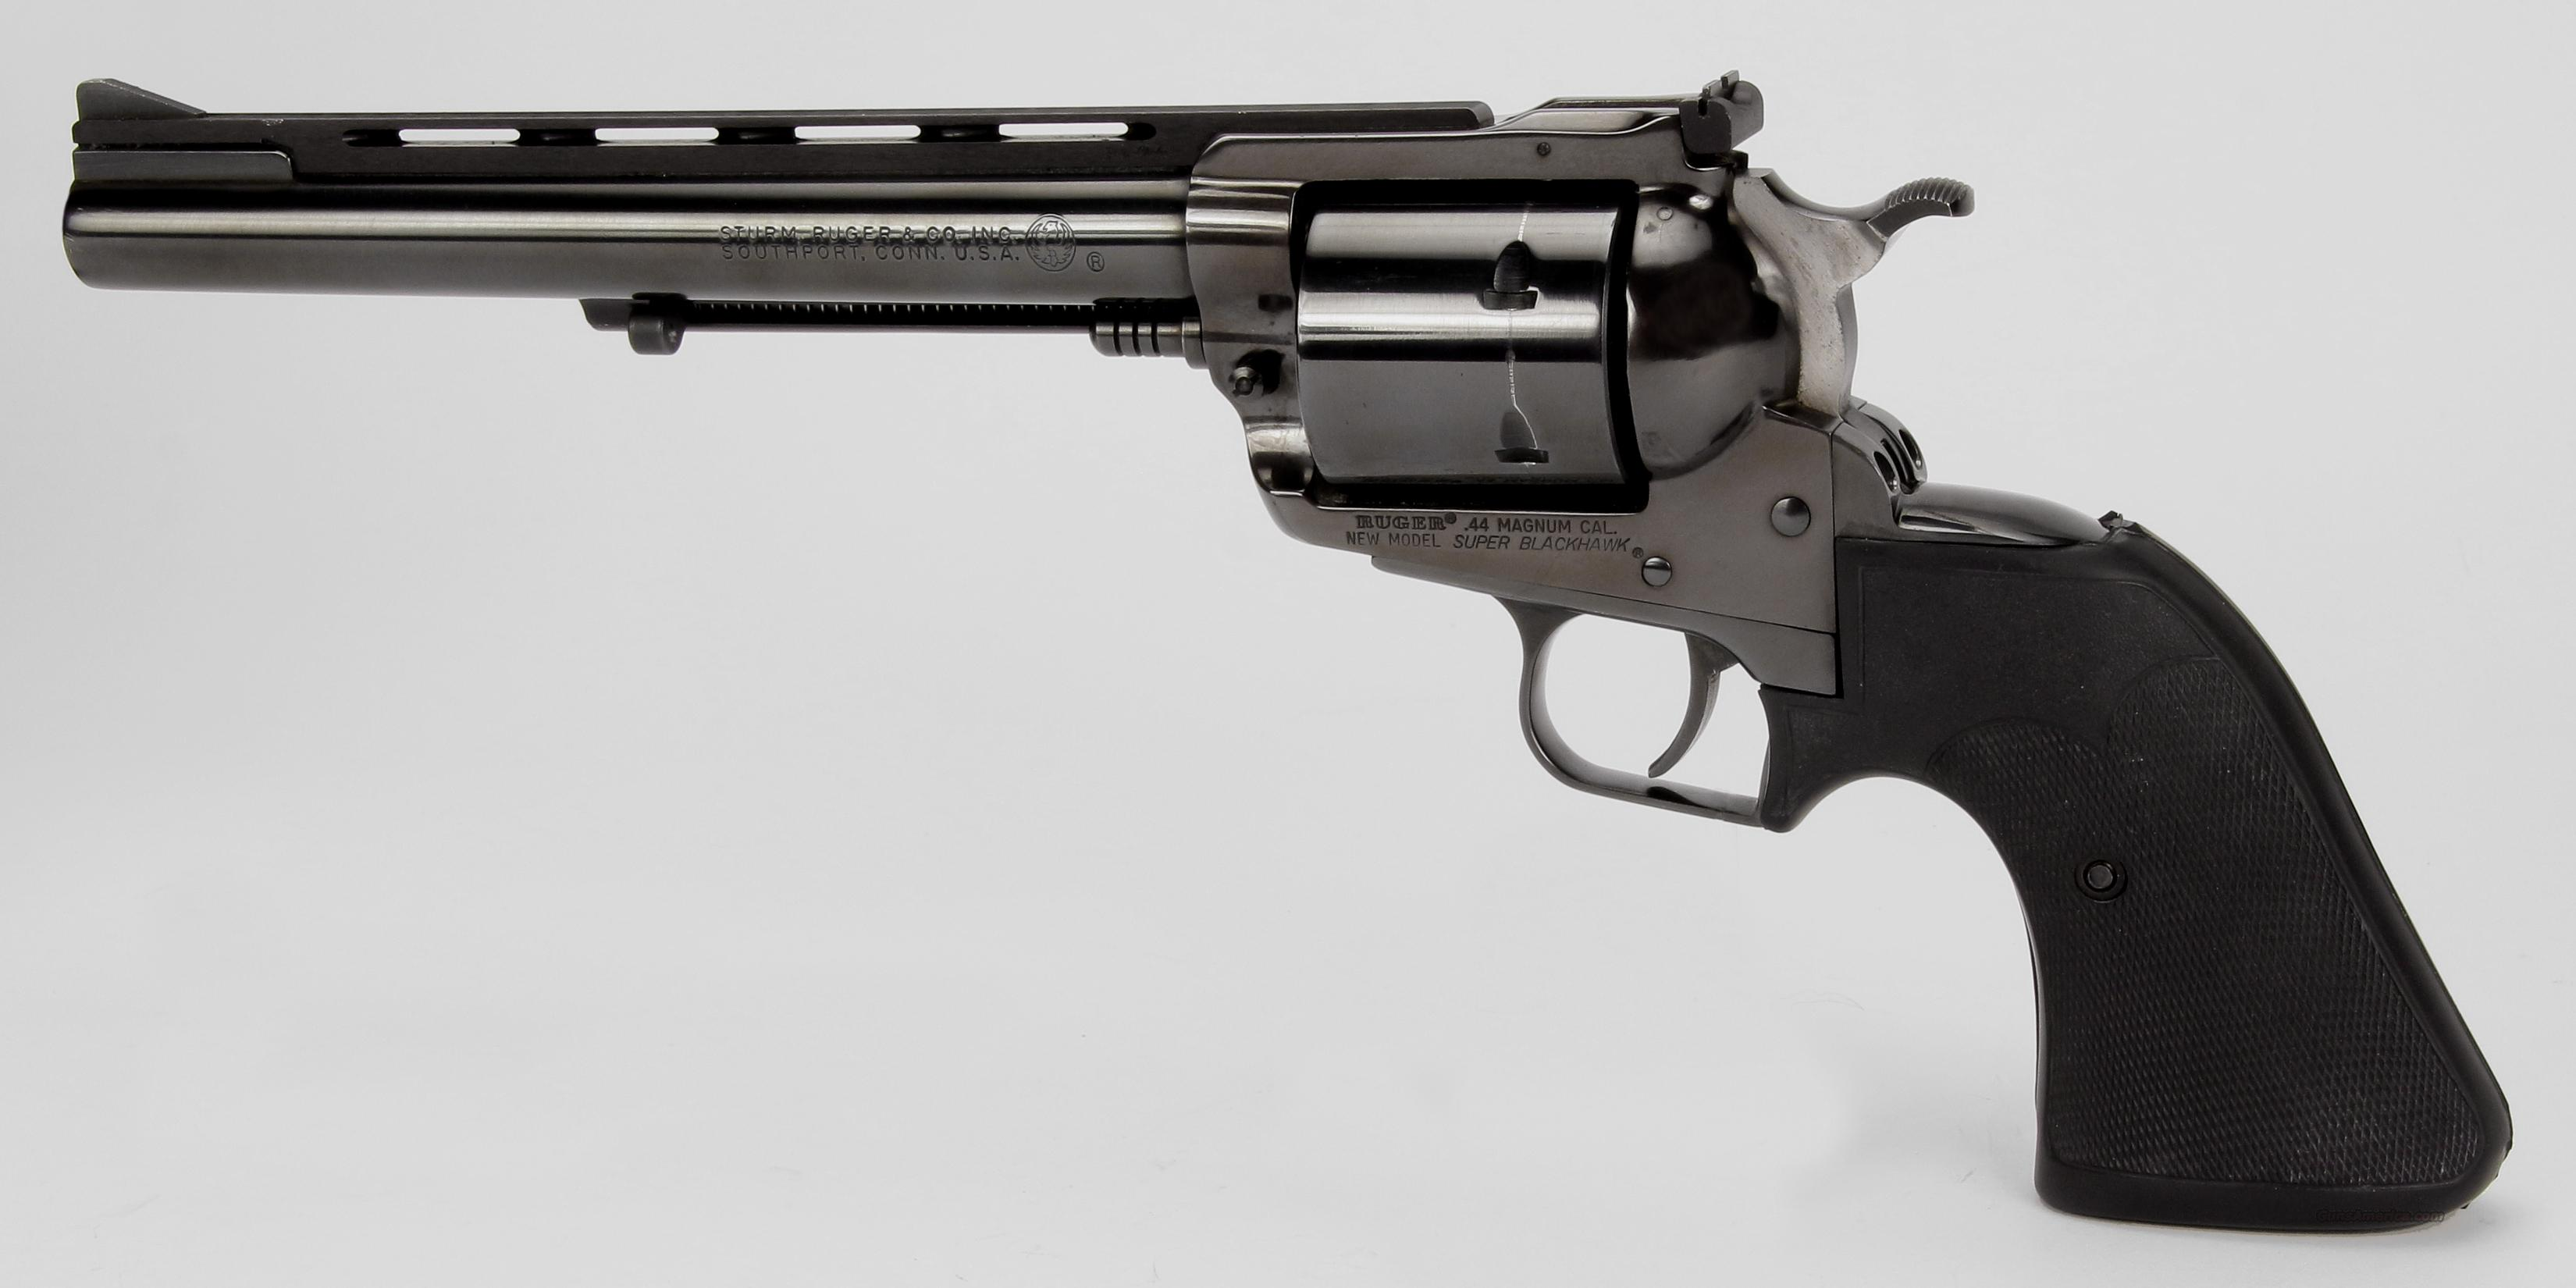 Ruger New Model Super Blackhawk Revolver  Guns > Pistols > Ruger Single Action Revolvers > Blackhawk Type